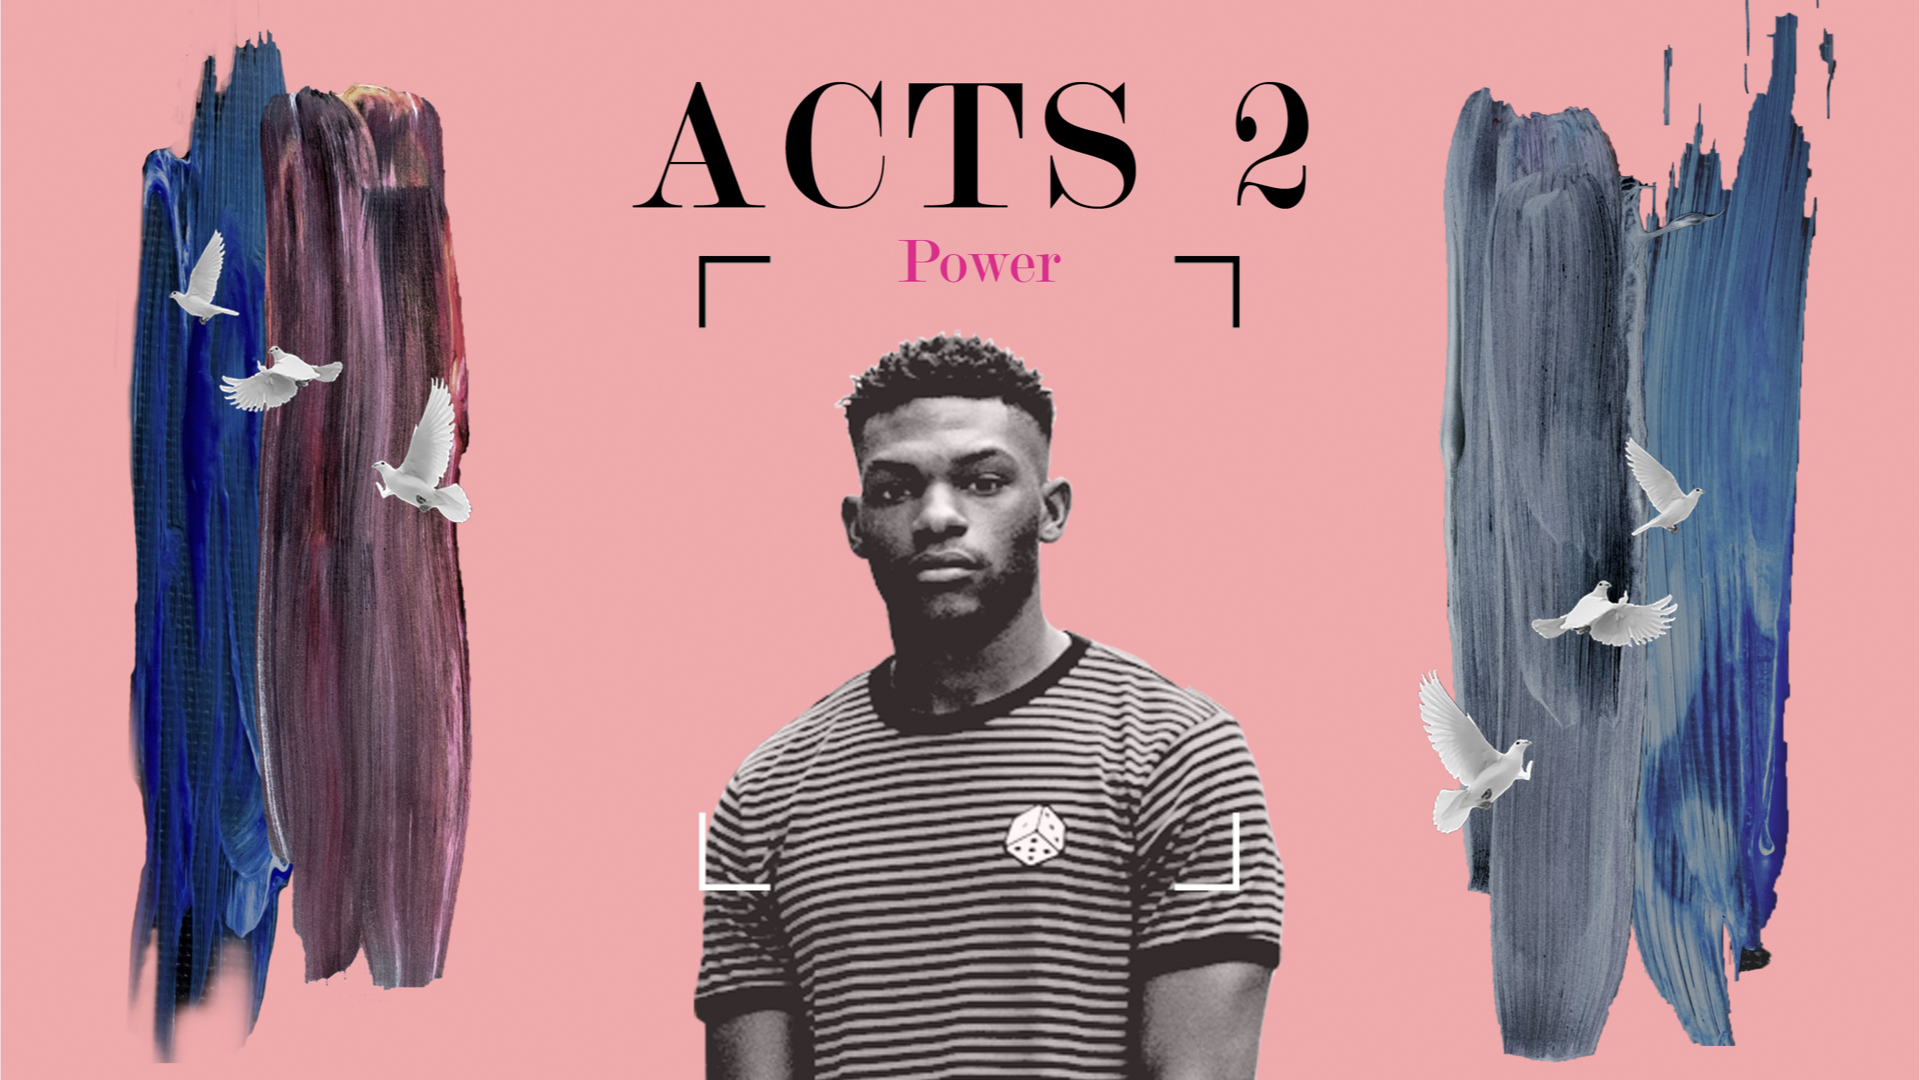 Acts 2 - Power.021.jpeg